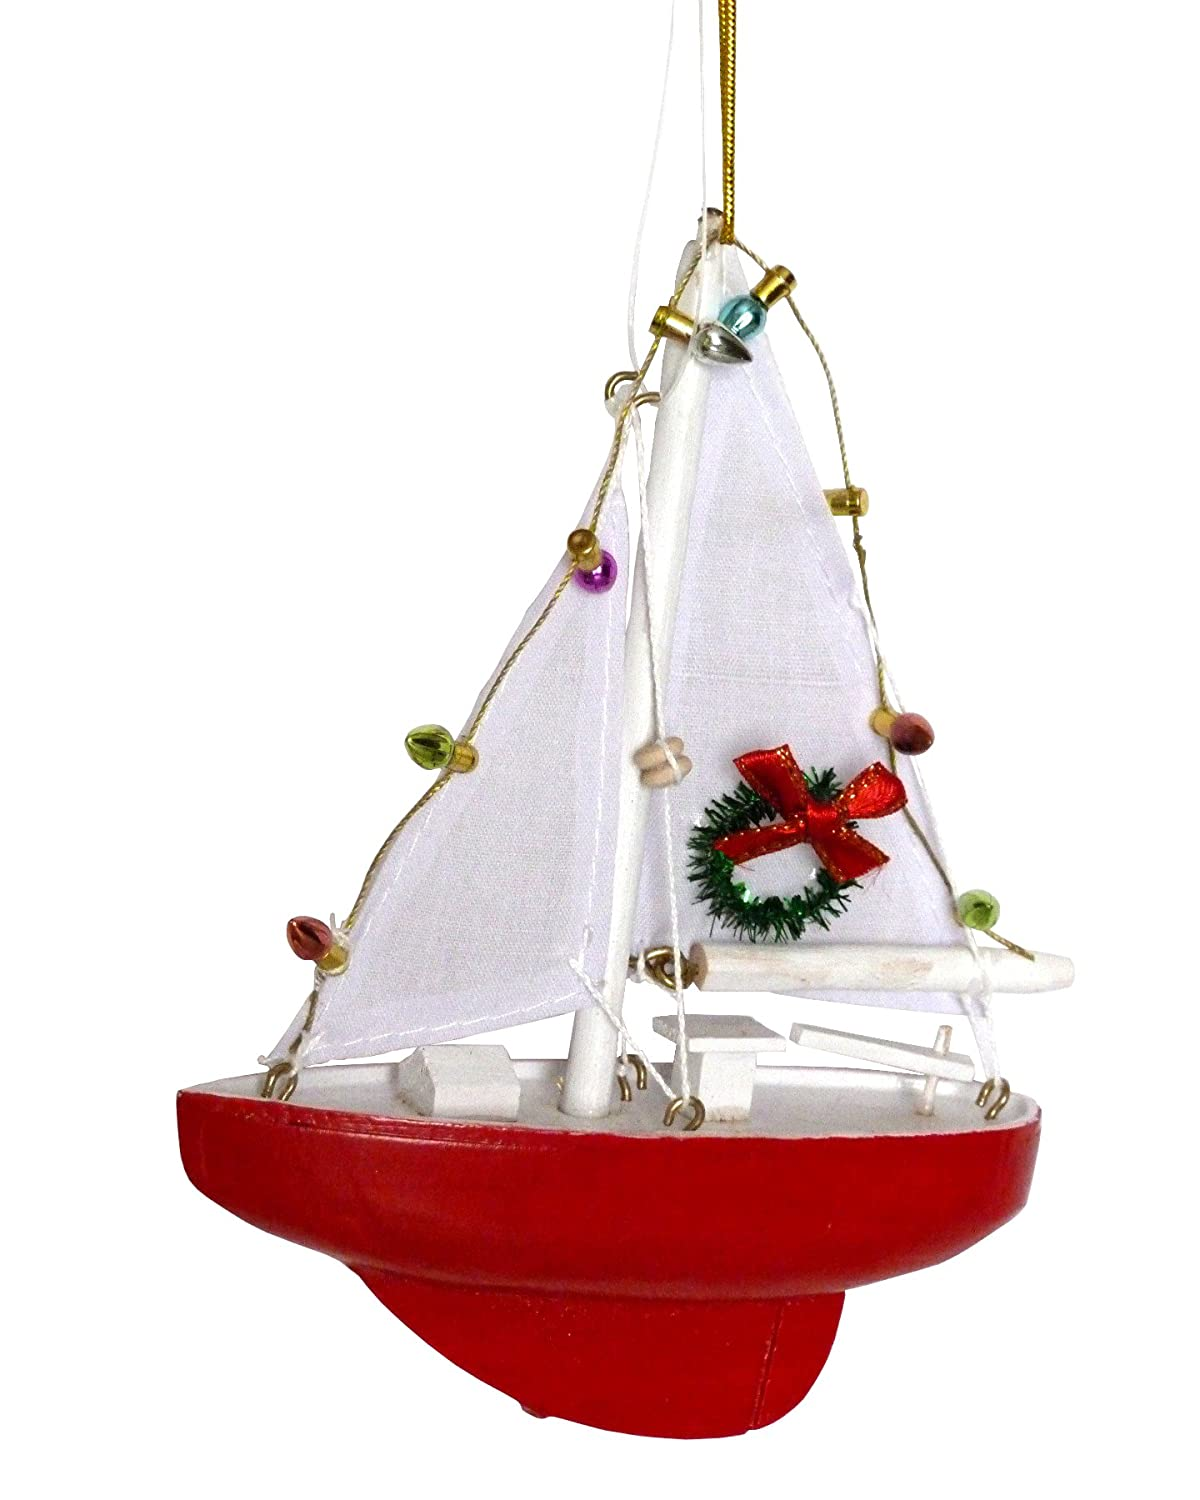 Amazon: Sailboat With Lights And Wreath Christmas Ornament  Holiday  Nautical Beach Decor: Home & Kitchen